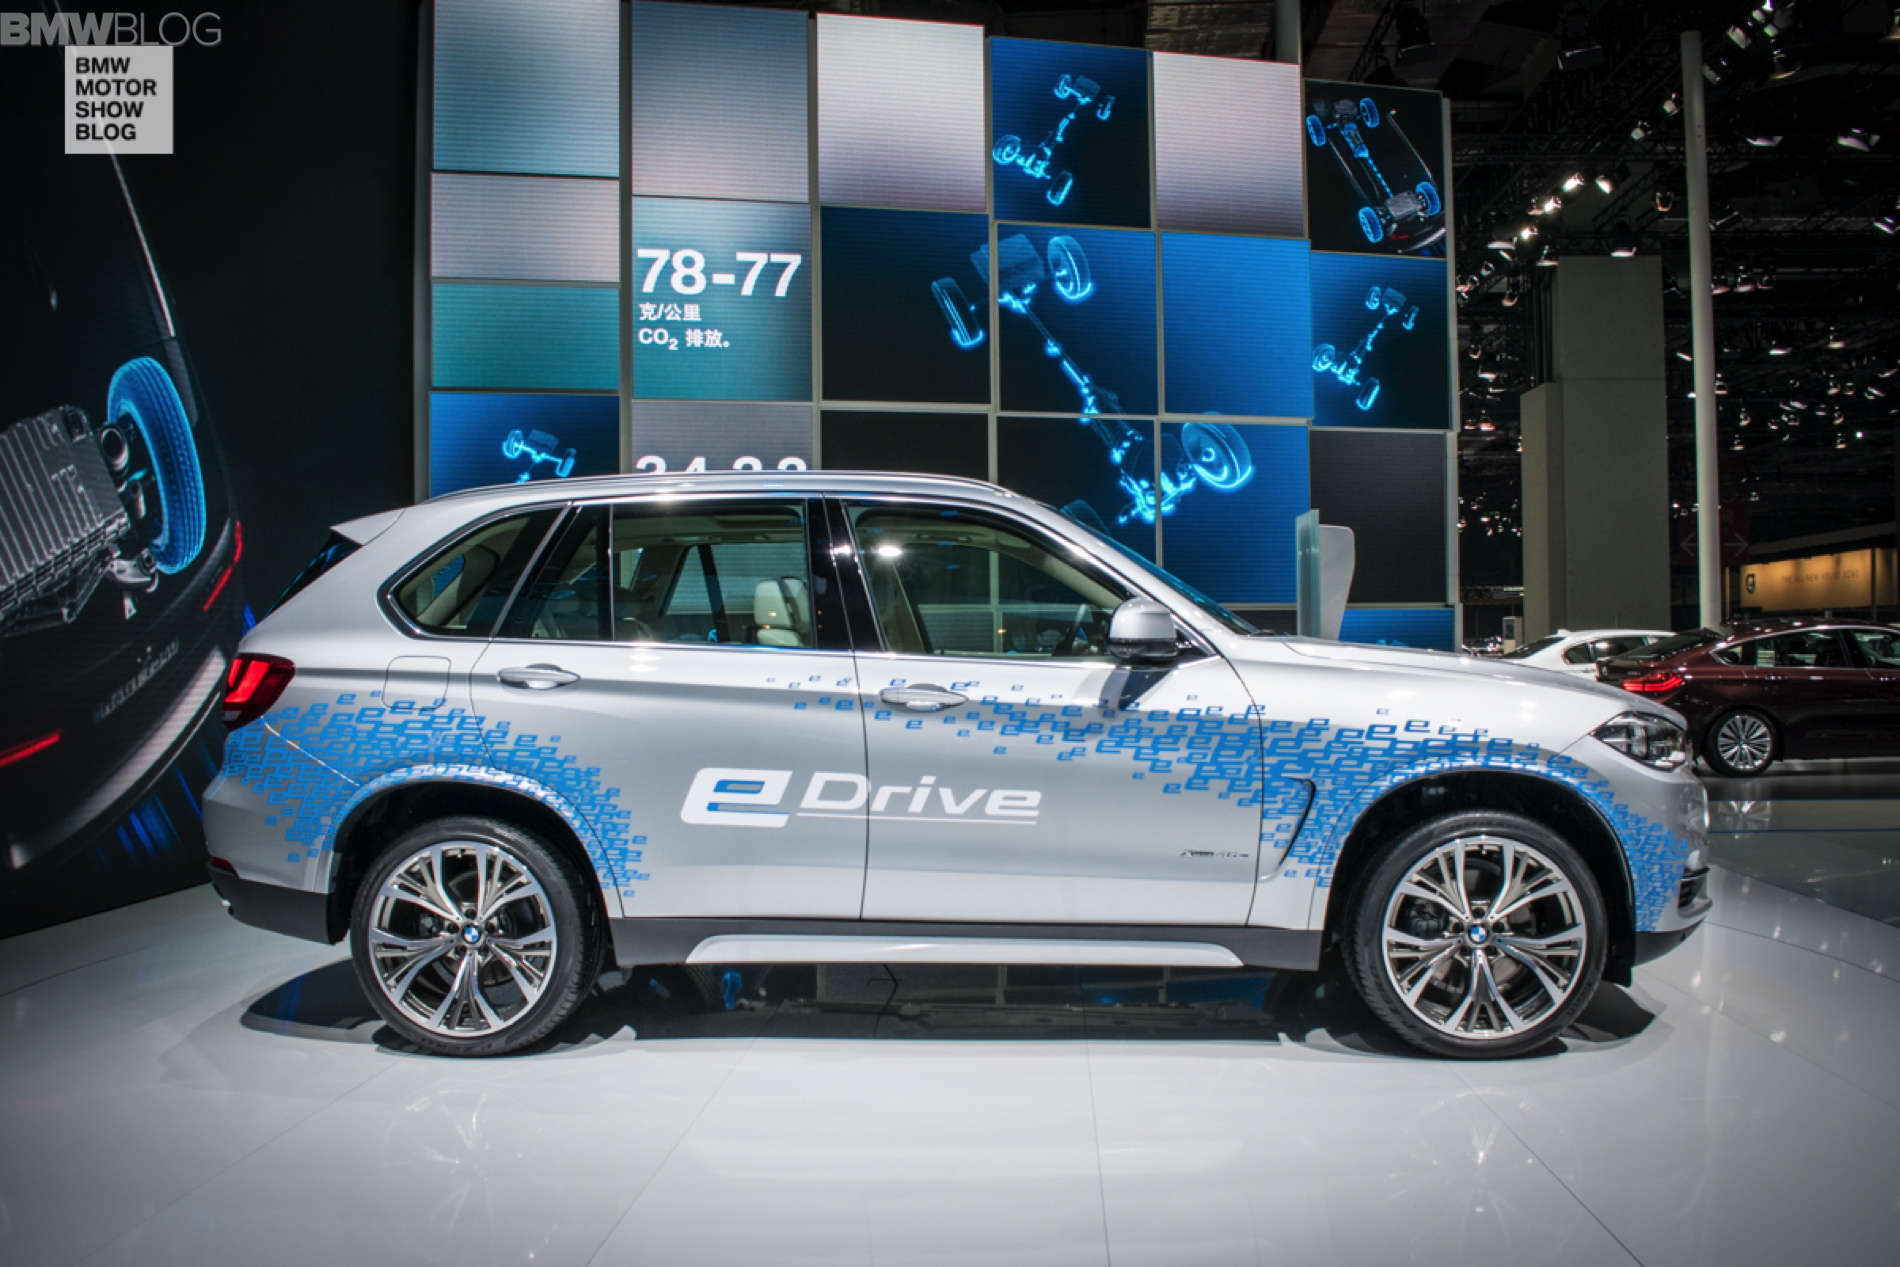 2016 Bmw X5 Xdrive40e Plug In Hybrid To Sell For 63 095